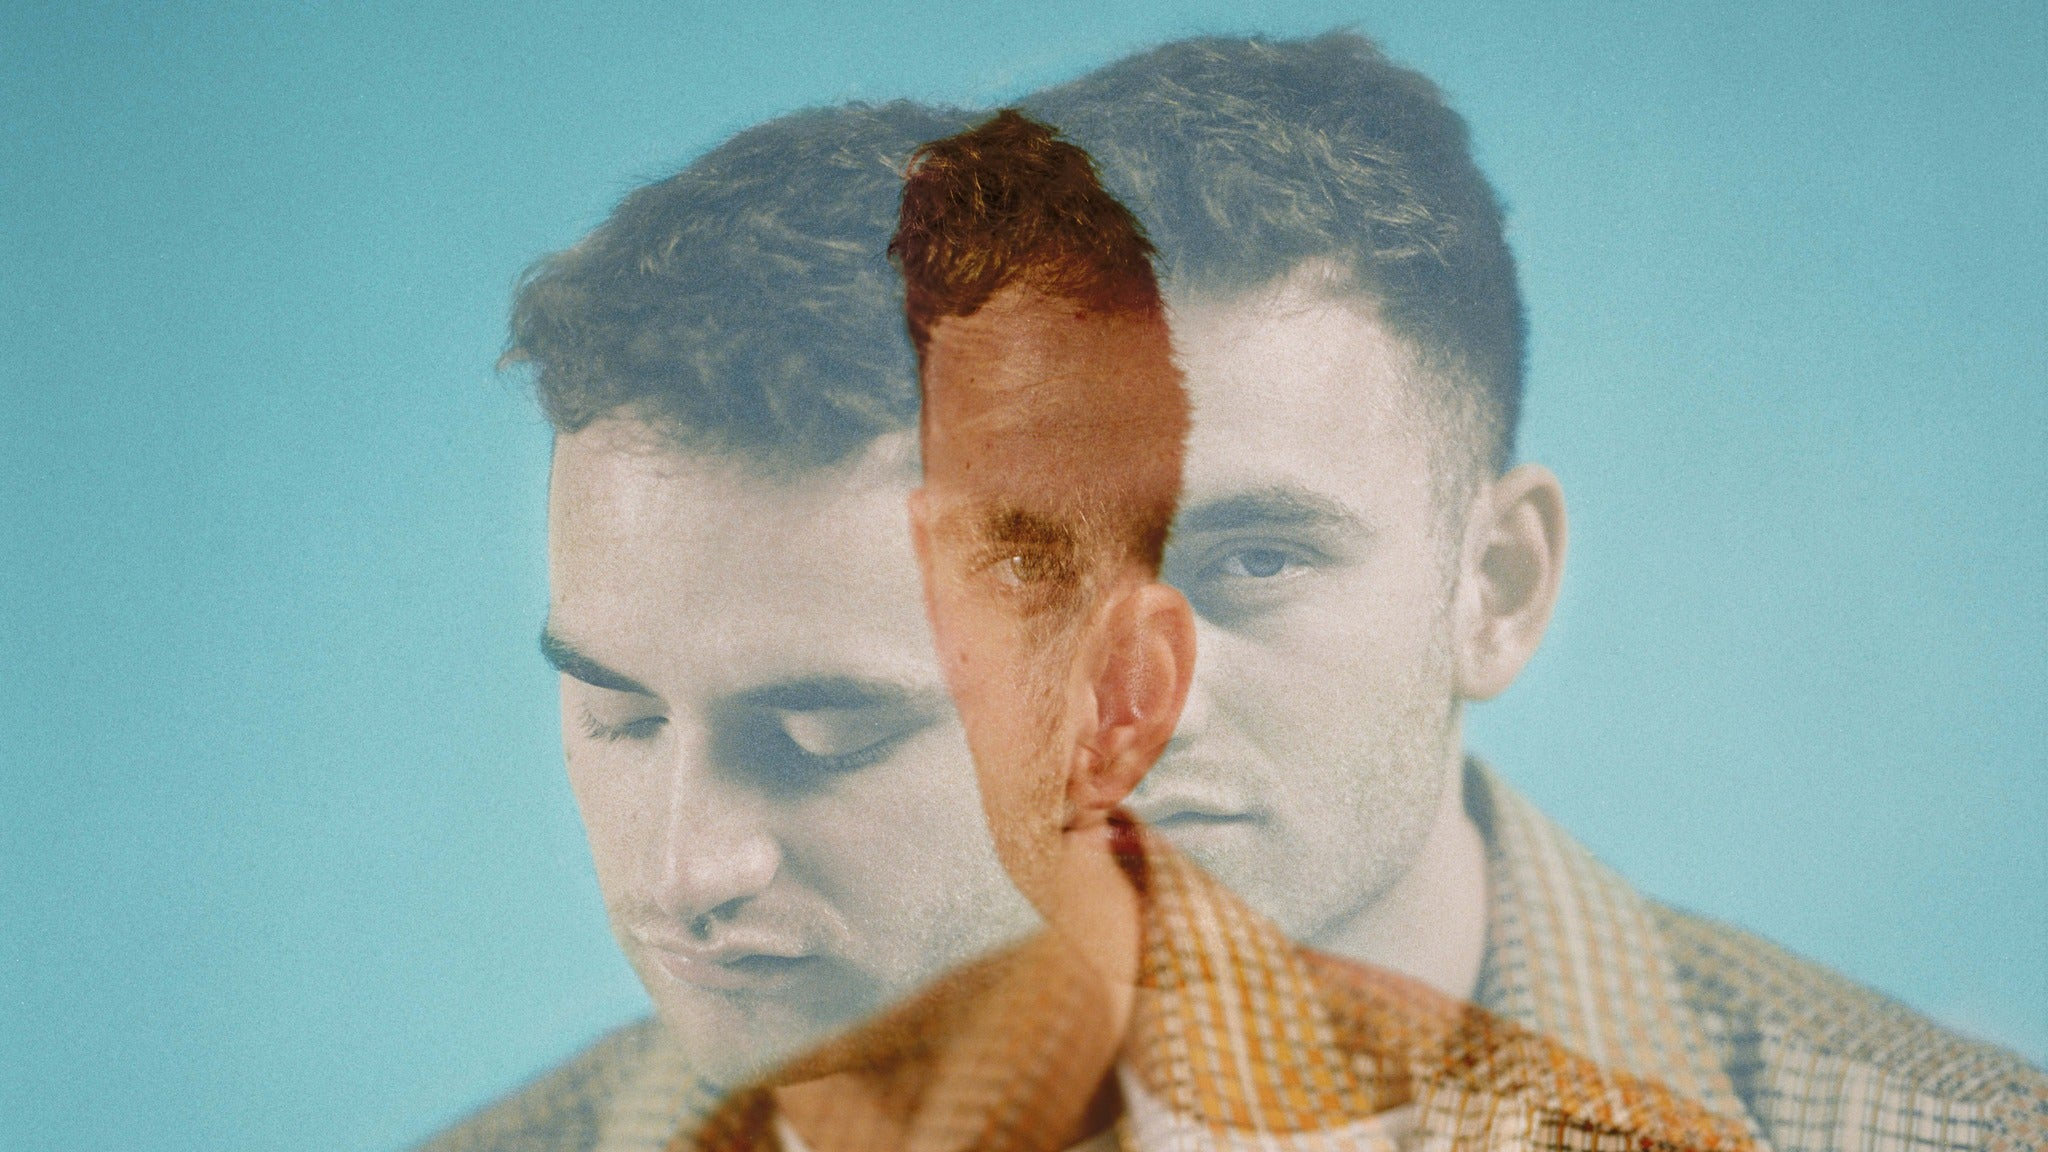 Tom Misch at Fox Theater - Oakland